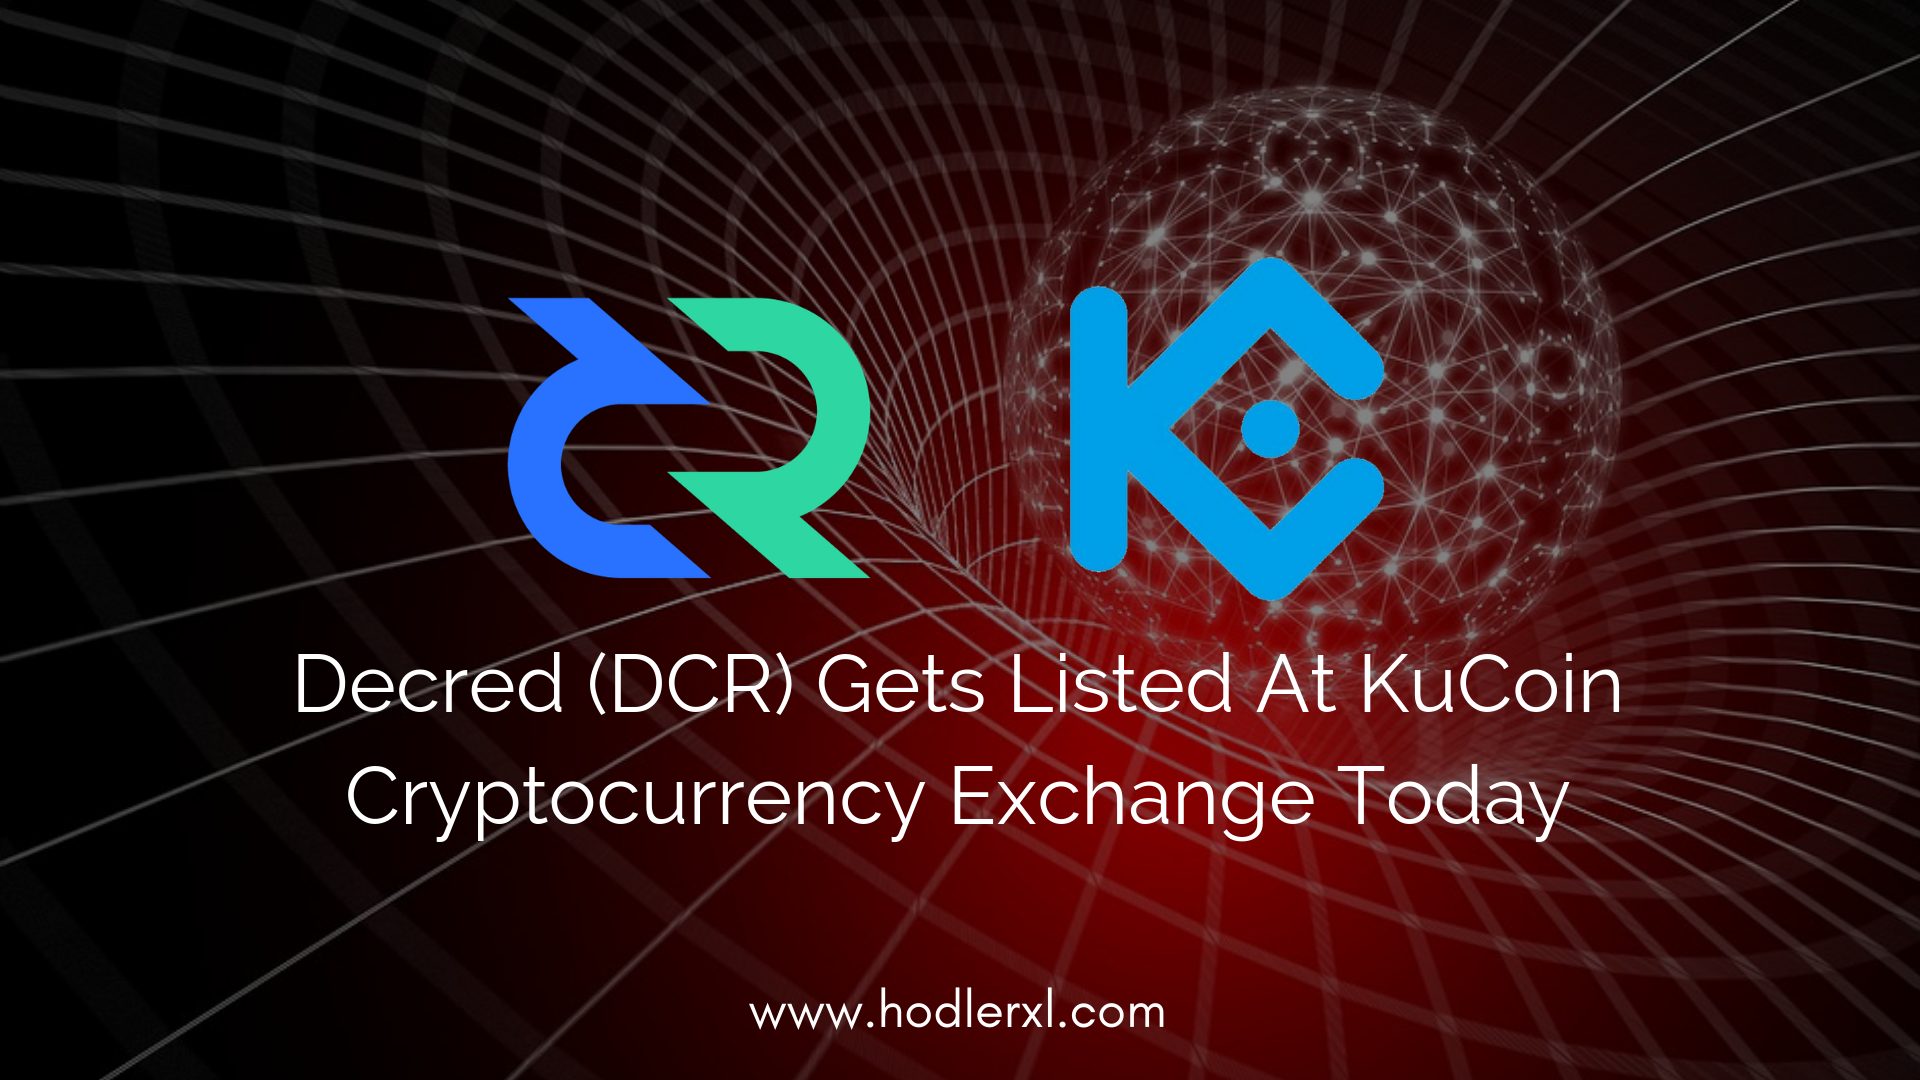 Decred (DCR) Gets Listed At KuCoin Cryptocurrency Exchange Today